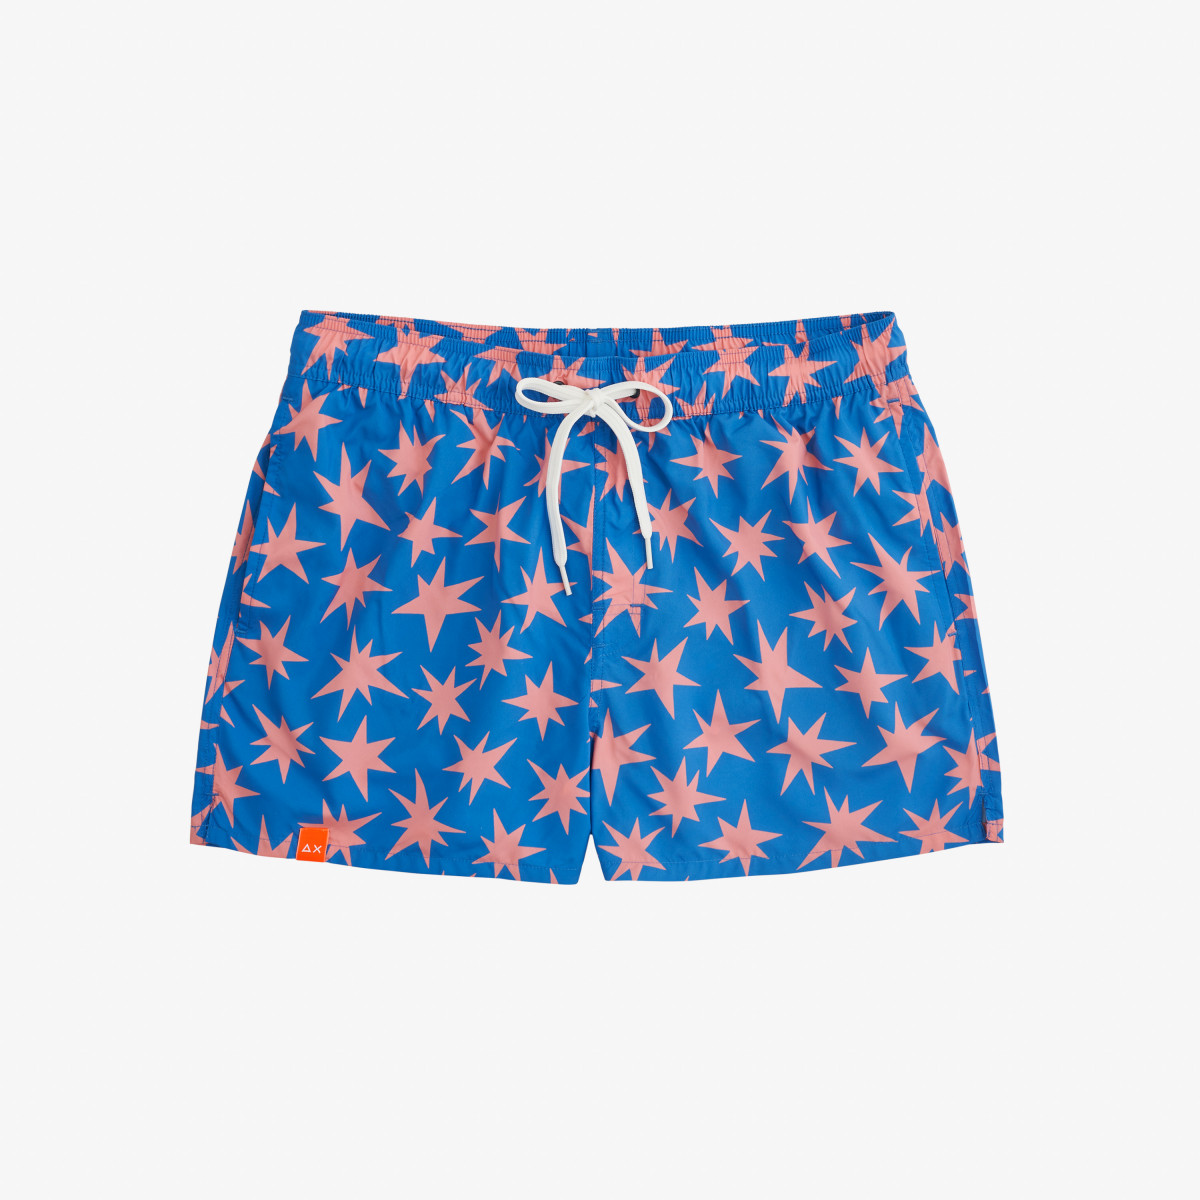 SWIM PANT ABSTRACT BLUE/PINK